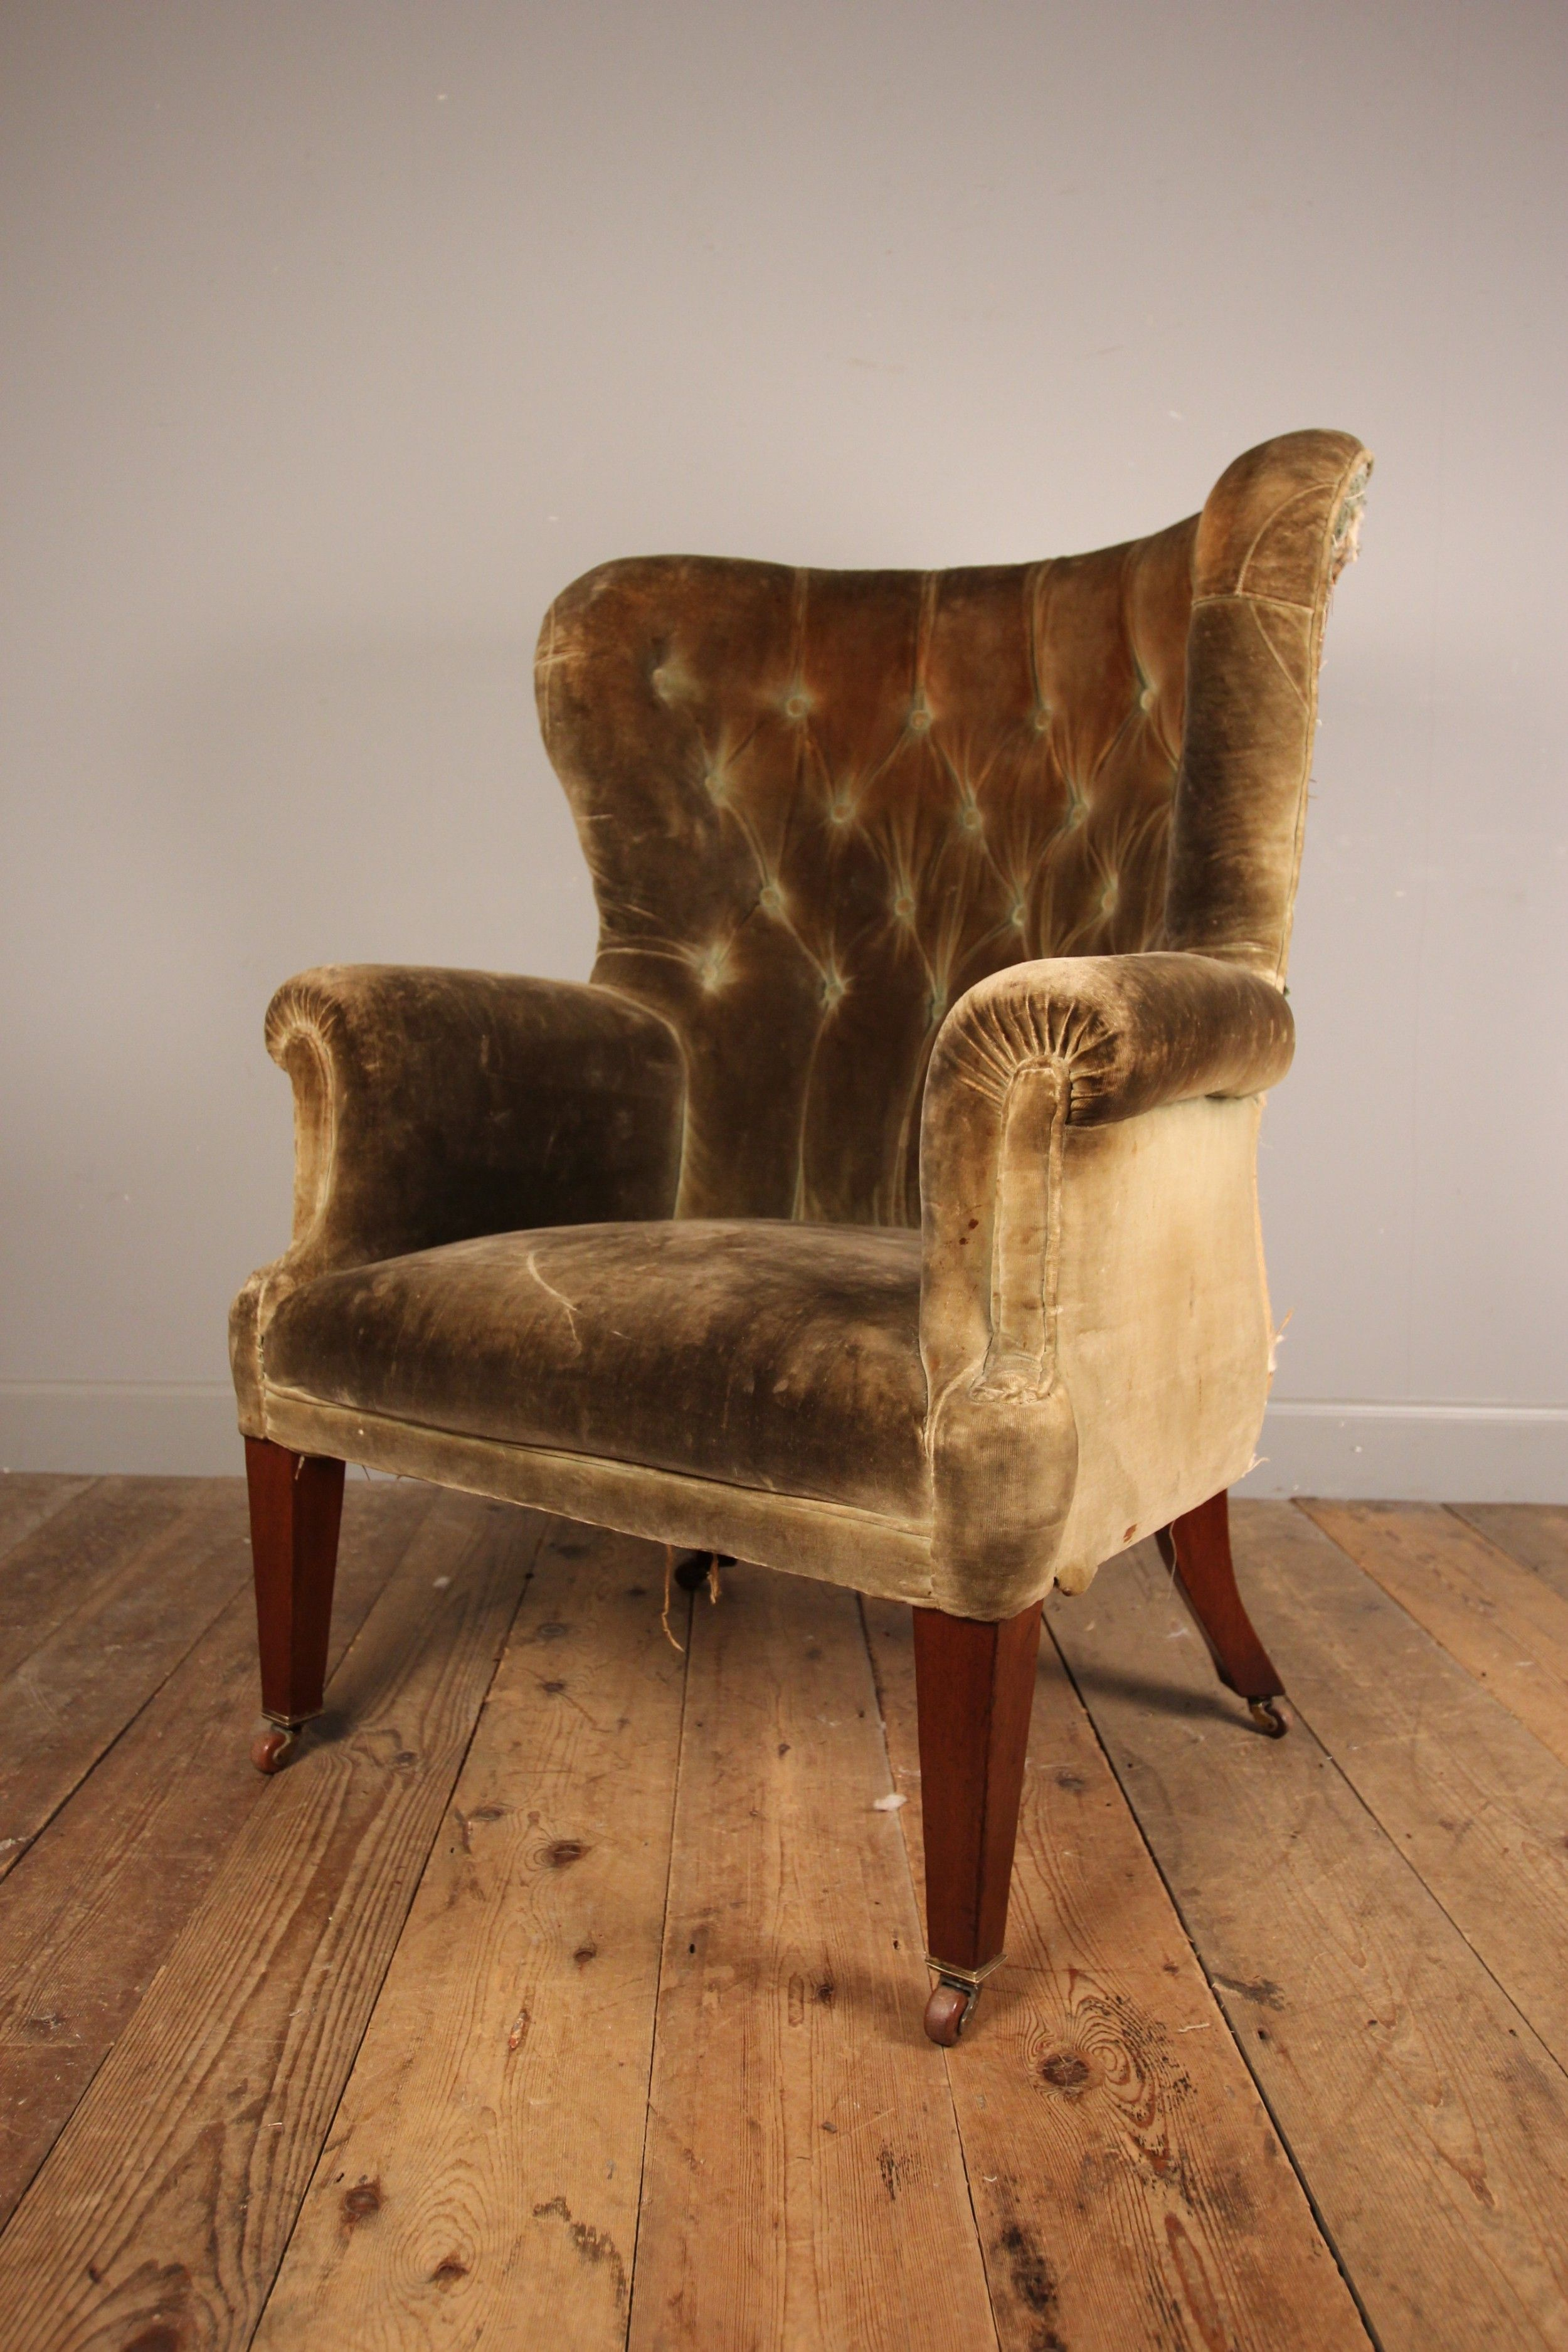 LARGE 19TH C BARREL BACK WING CHAIR Chair, Wing chair